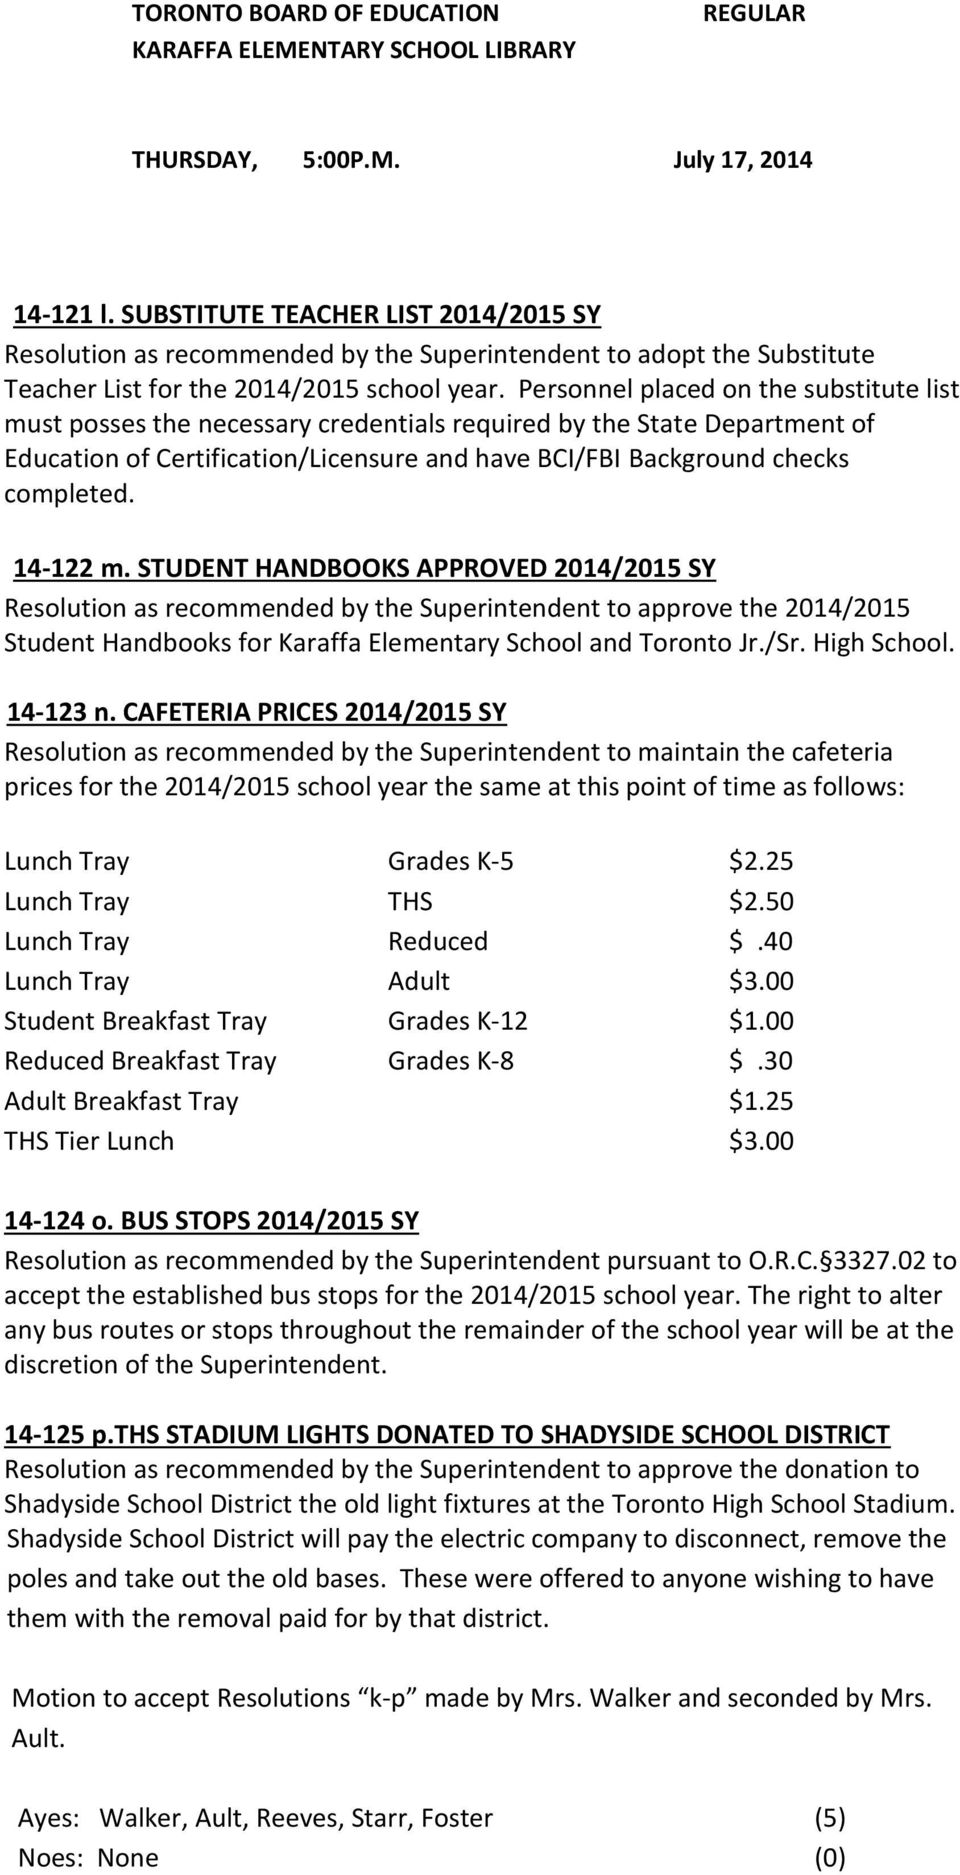 14-122 m. STUDENT HANDBOOKS APPROVED 2014/2015 SY Resolution as recommended by the Superintendent to approve the 2014/2015 Student Handbooks for Karaffa Elementary School and Toronto Jr./Sr.